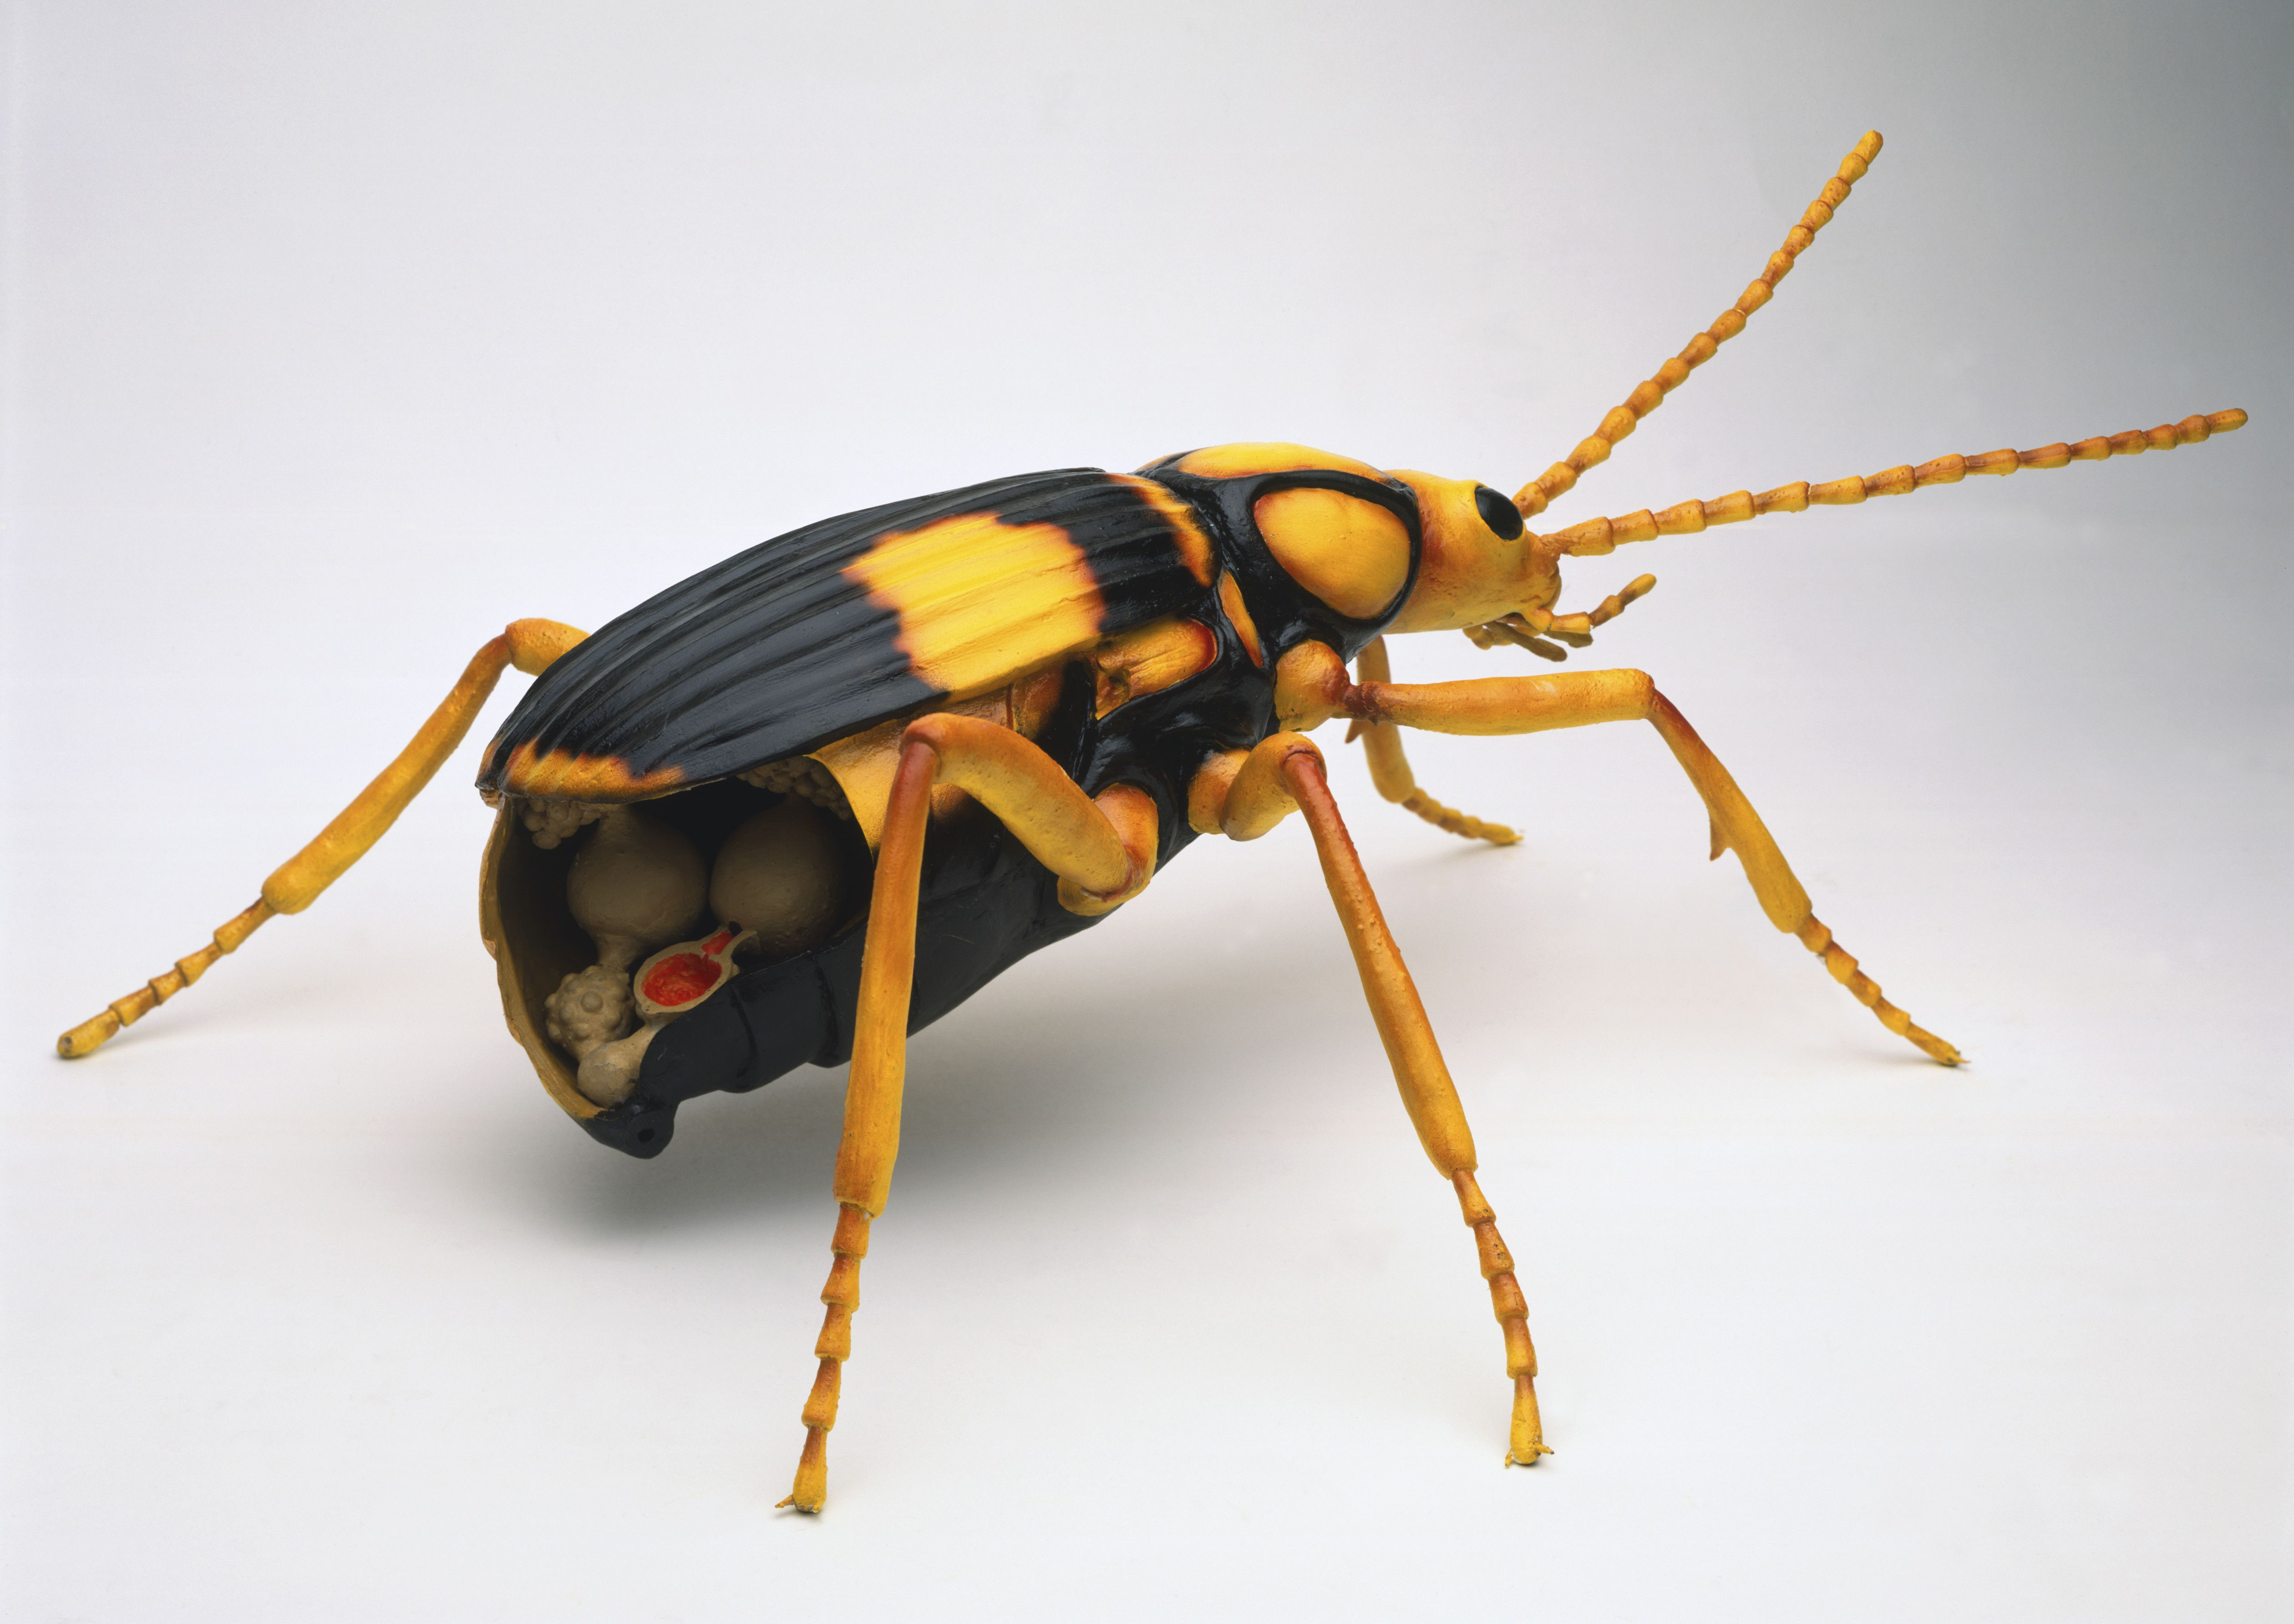 Model of black and yellow Bombardier Beetle with yellow legs, cross section showing venom glands and reservoir, explosion chamber filled with red liquid with one-way valve.